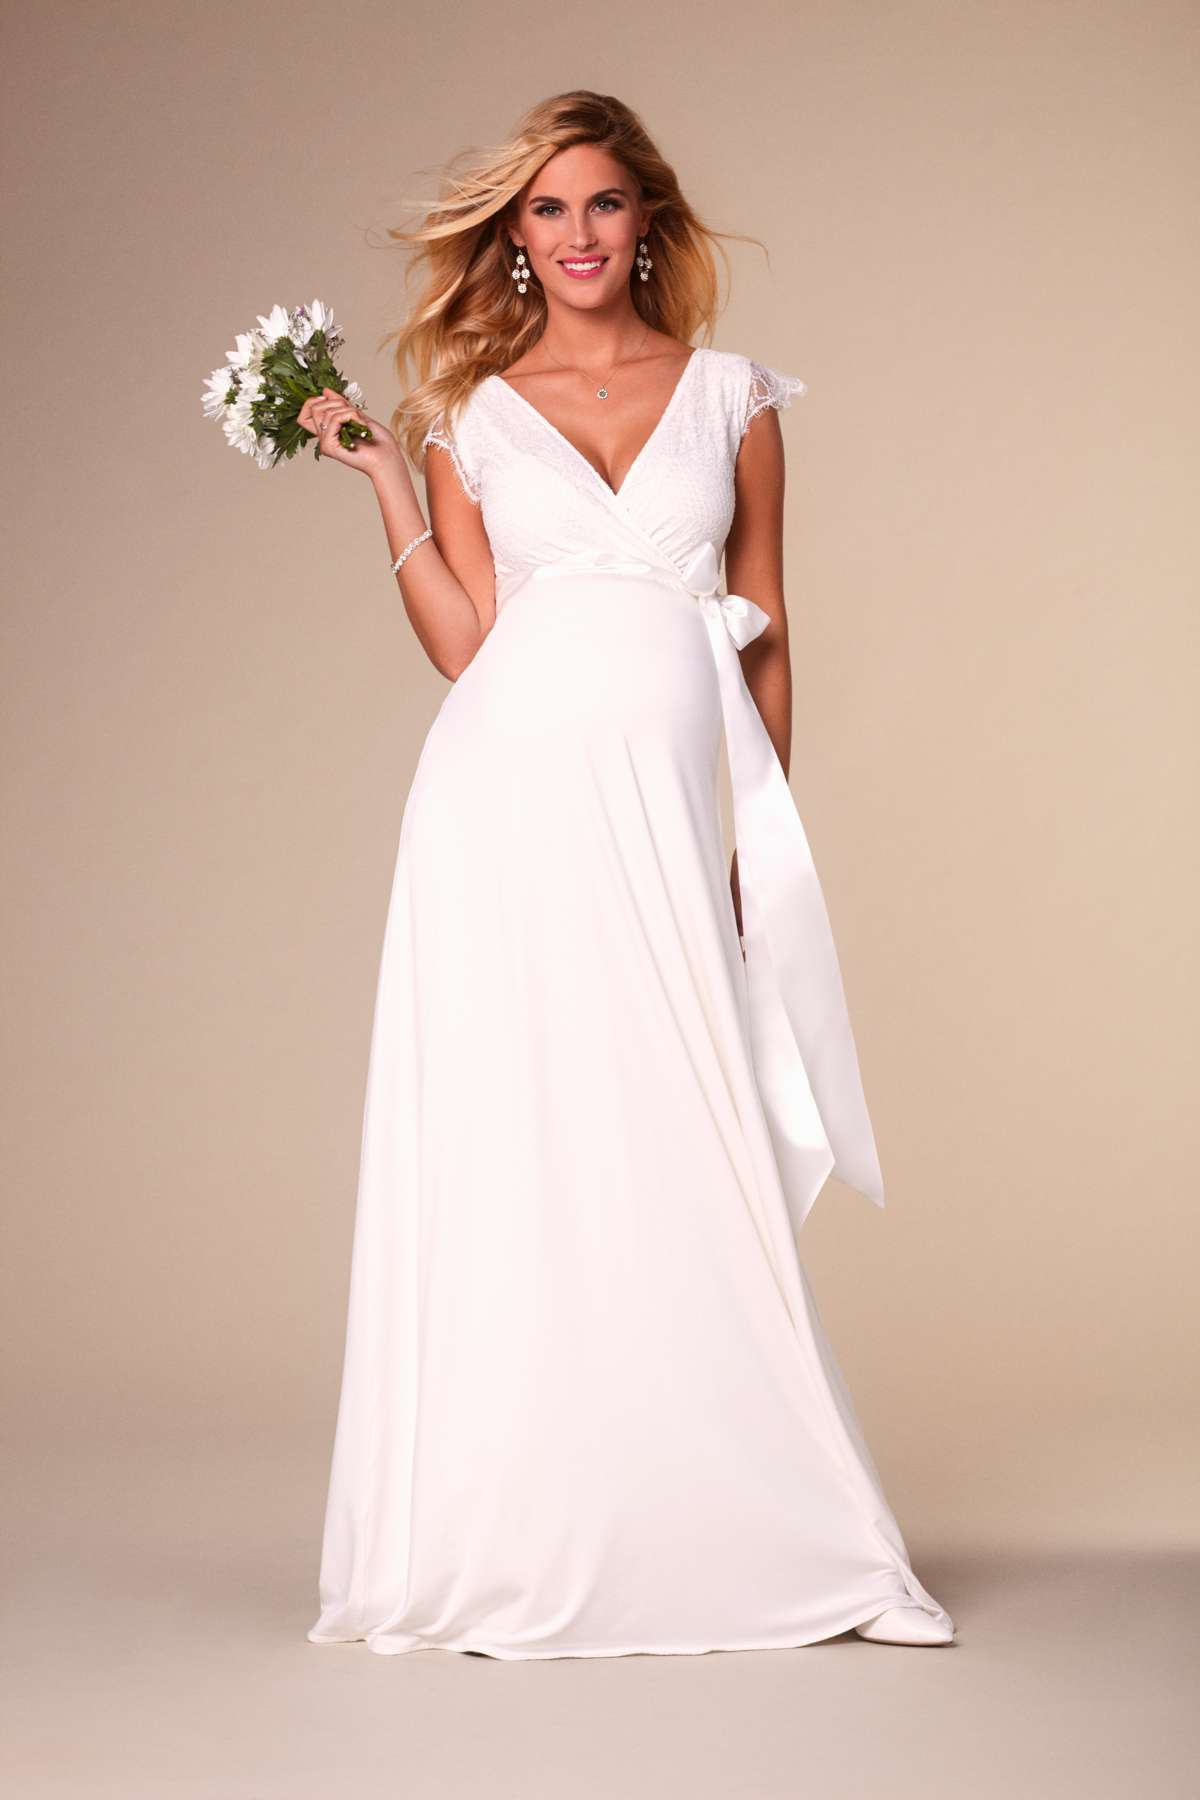 Stunning maternity wedding dresses love our wedding rosa ombrellifo Image collections